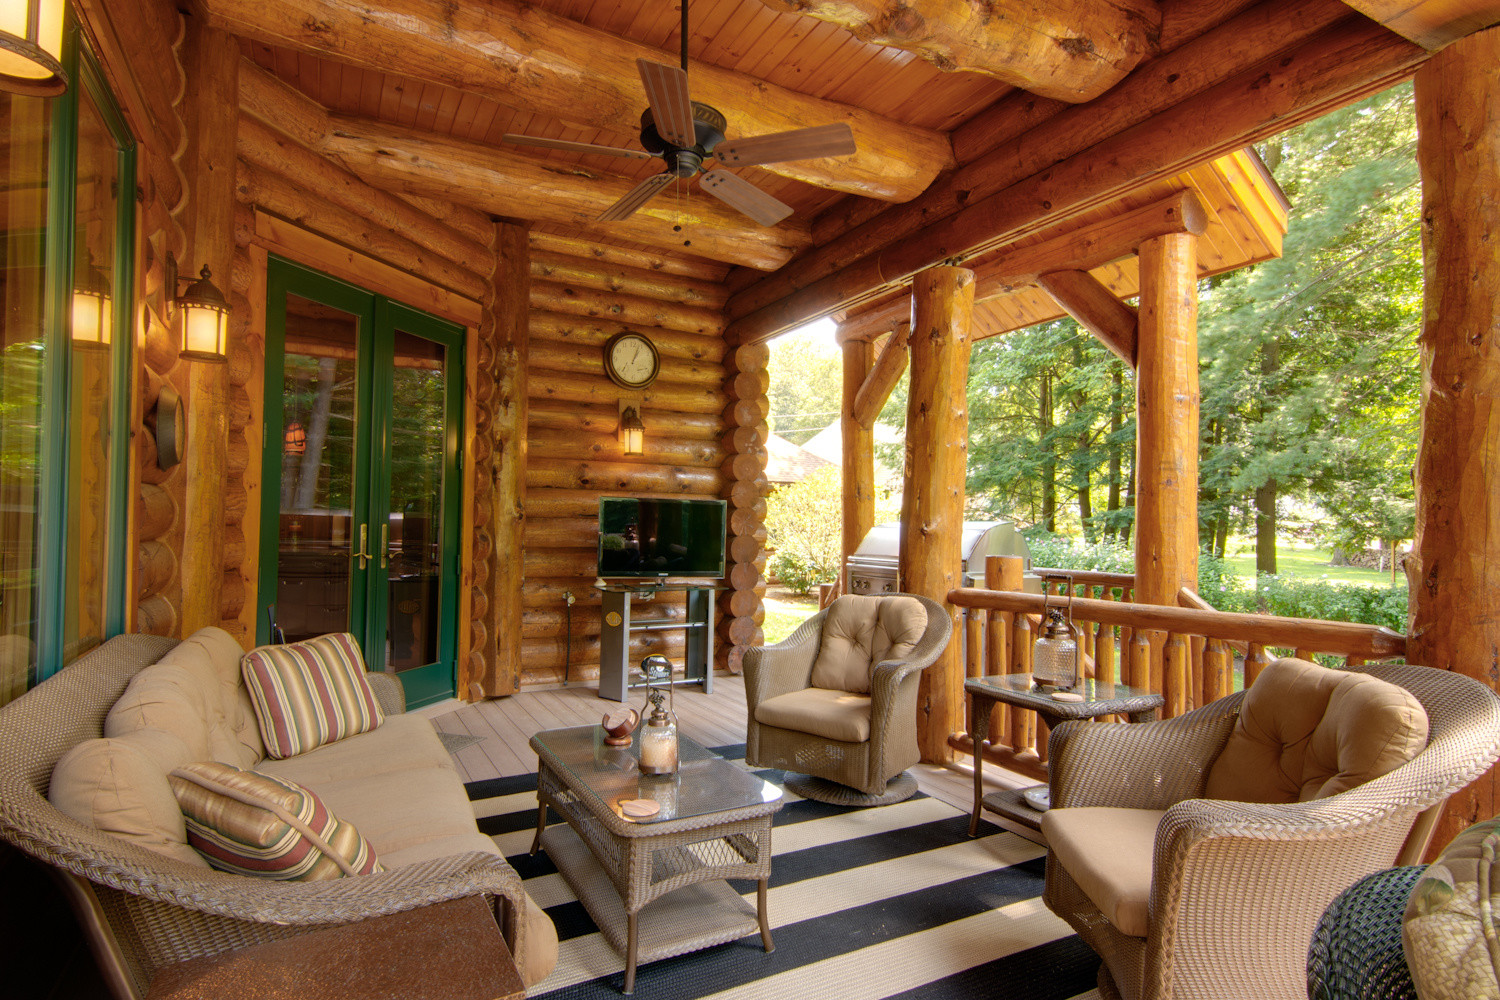 Outdoor entertainment areas for your log home Rustic style attic design a corner full of passion